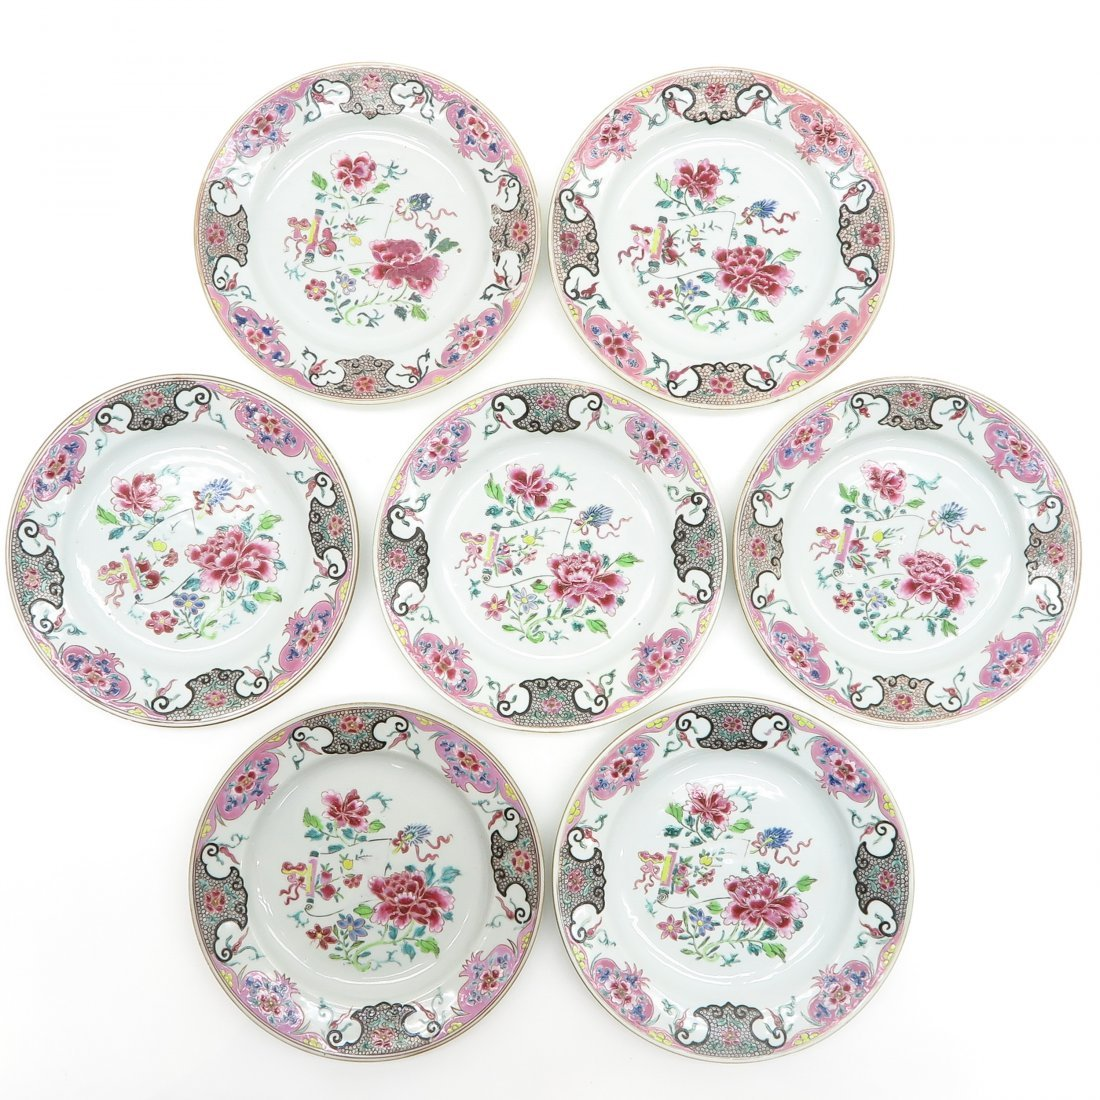 Lot of 18th Century China Porcelain Famille Rose Plates